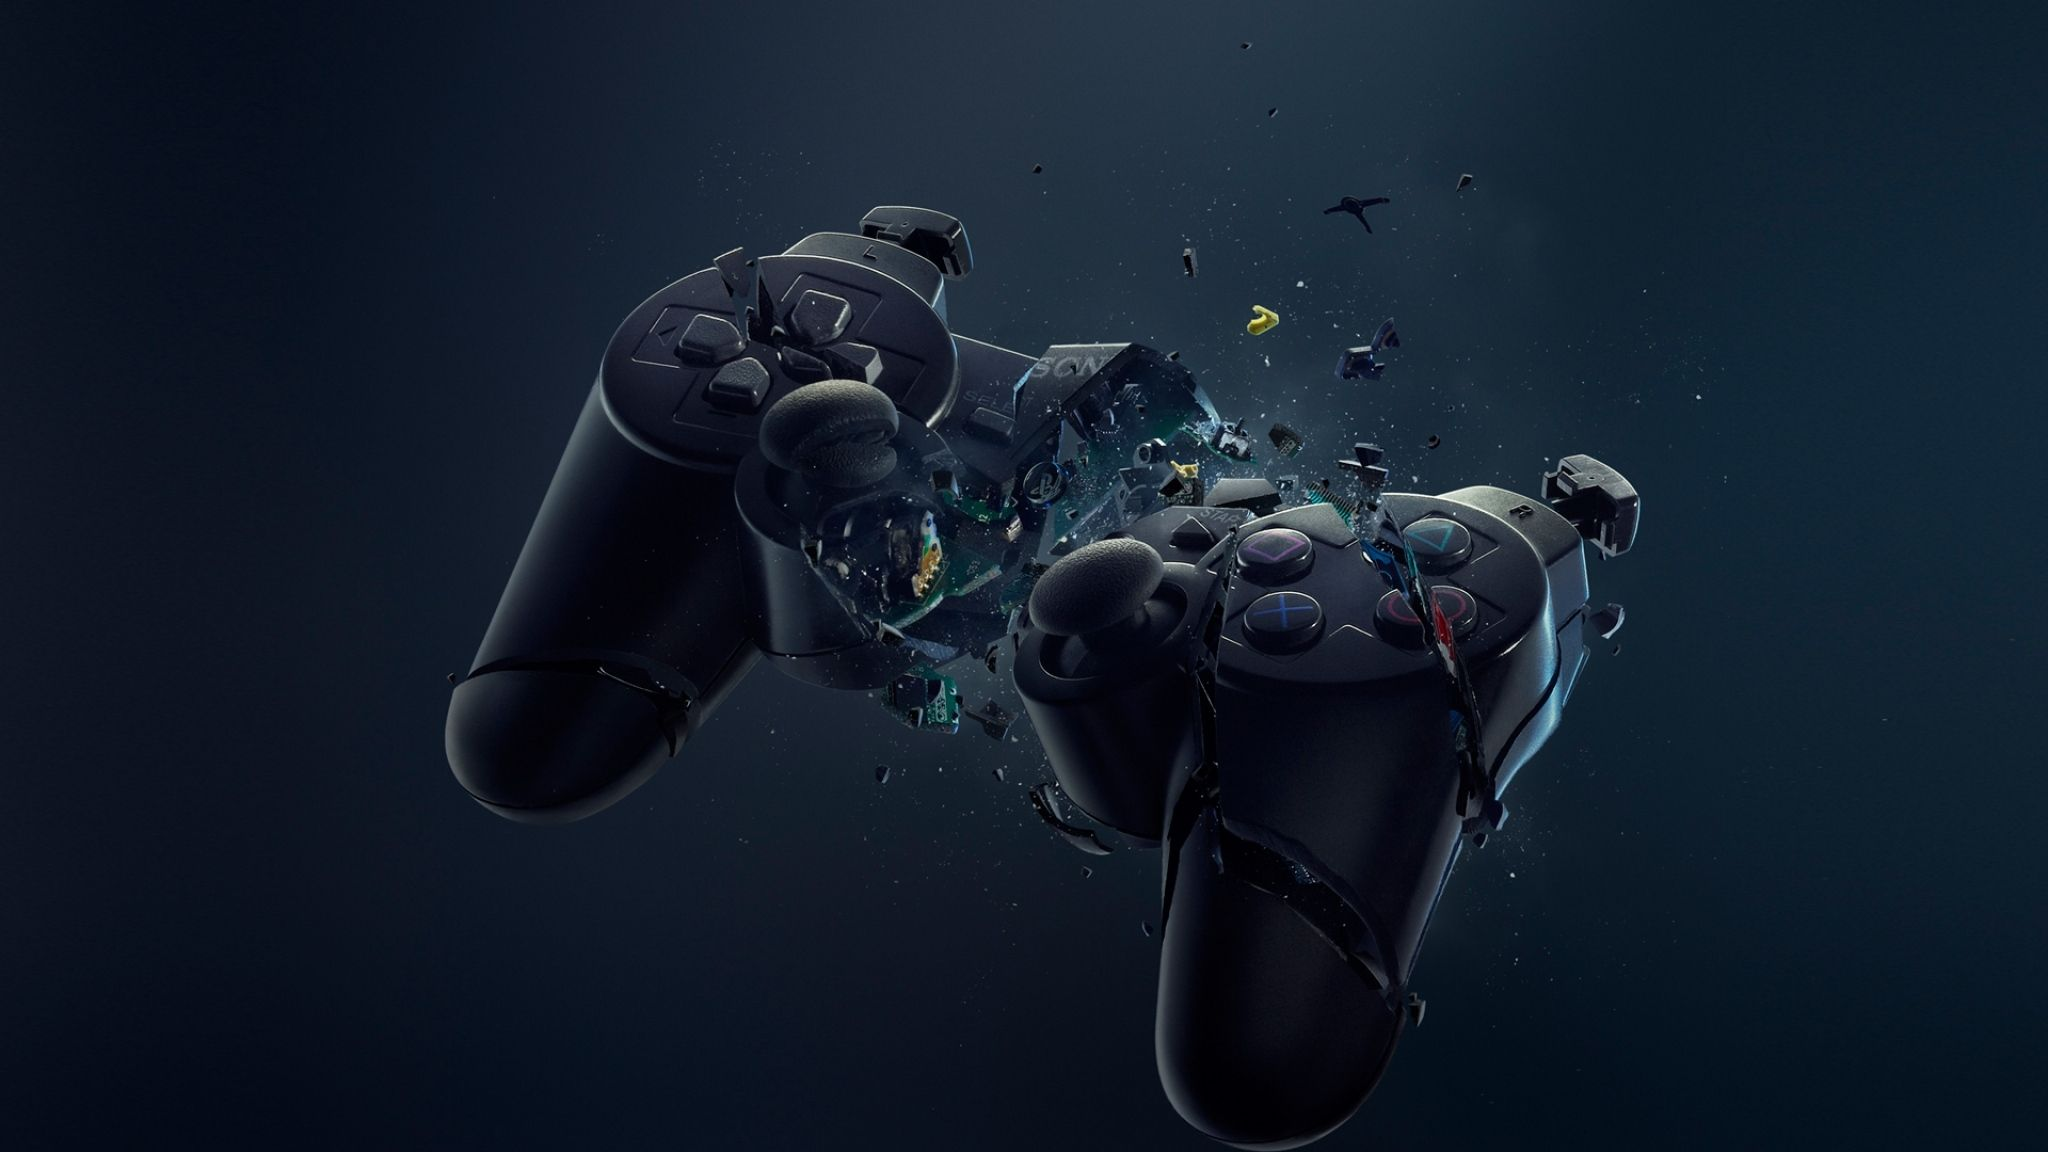 Hd Playstation Wallpapers Hd Desktop Backgrounds X Gaming